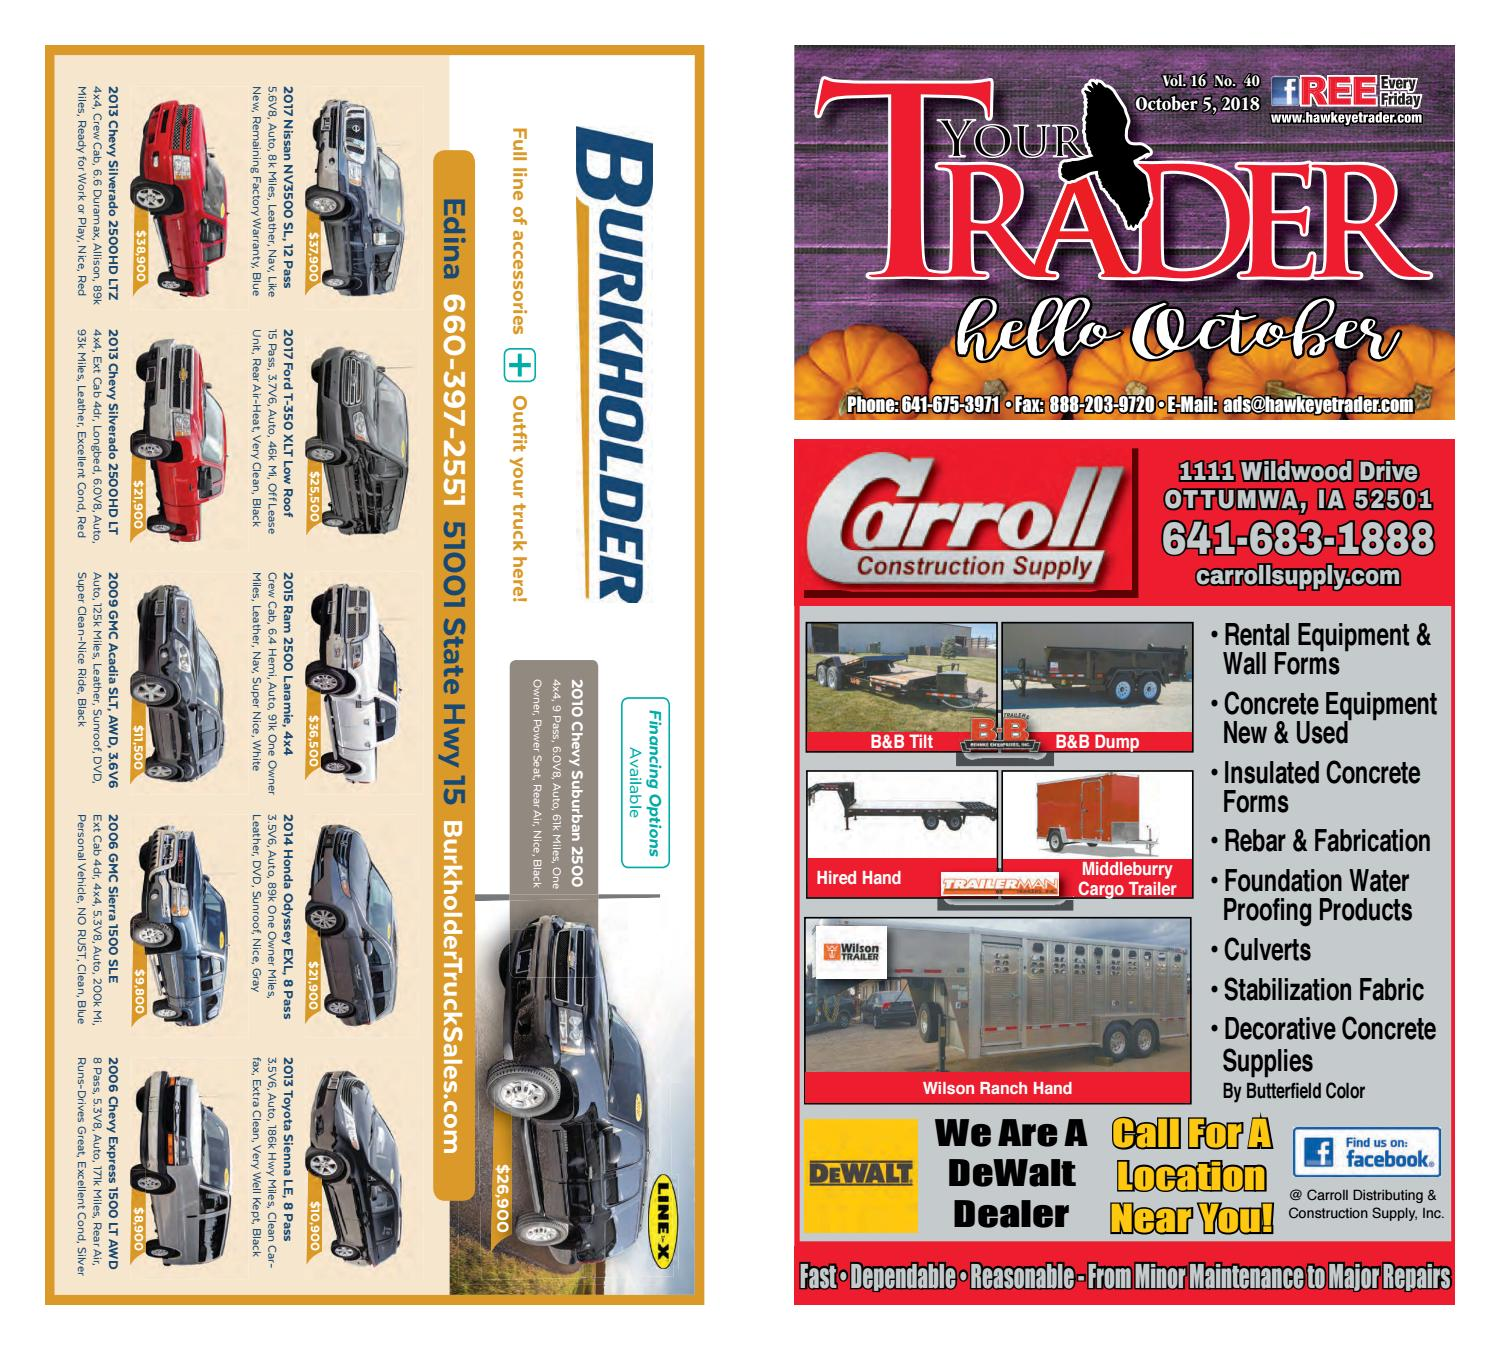 HawkeyeTrader100518 by Hawkeye Trader - issuu on